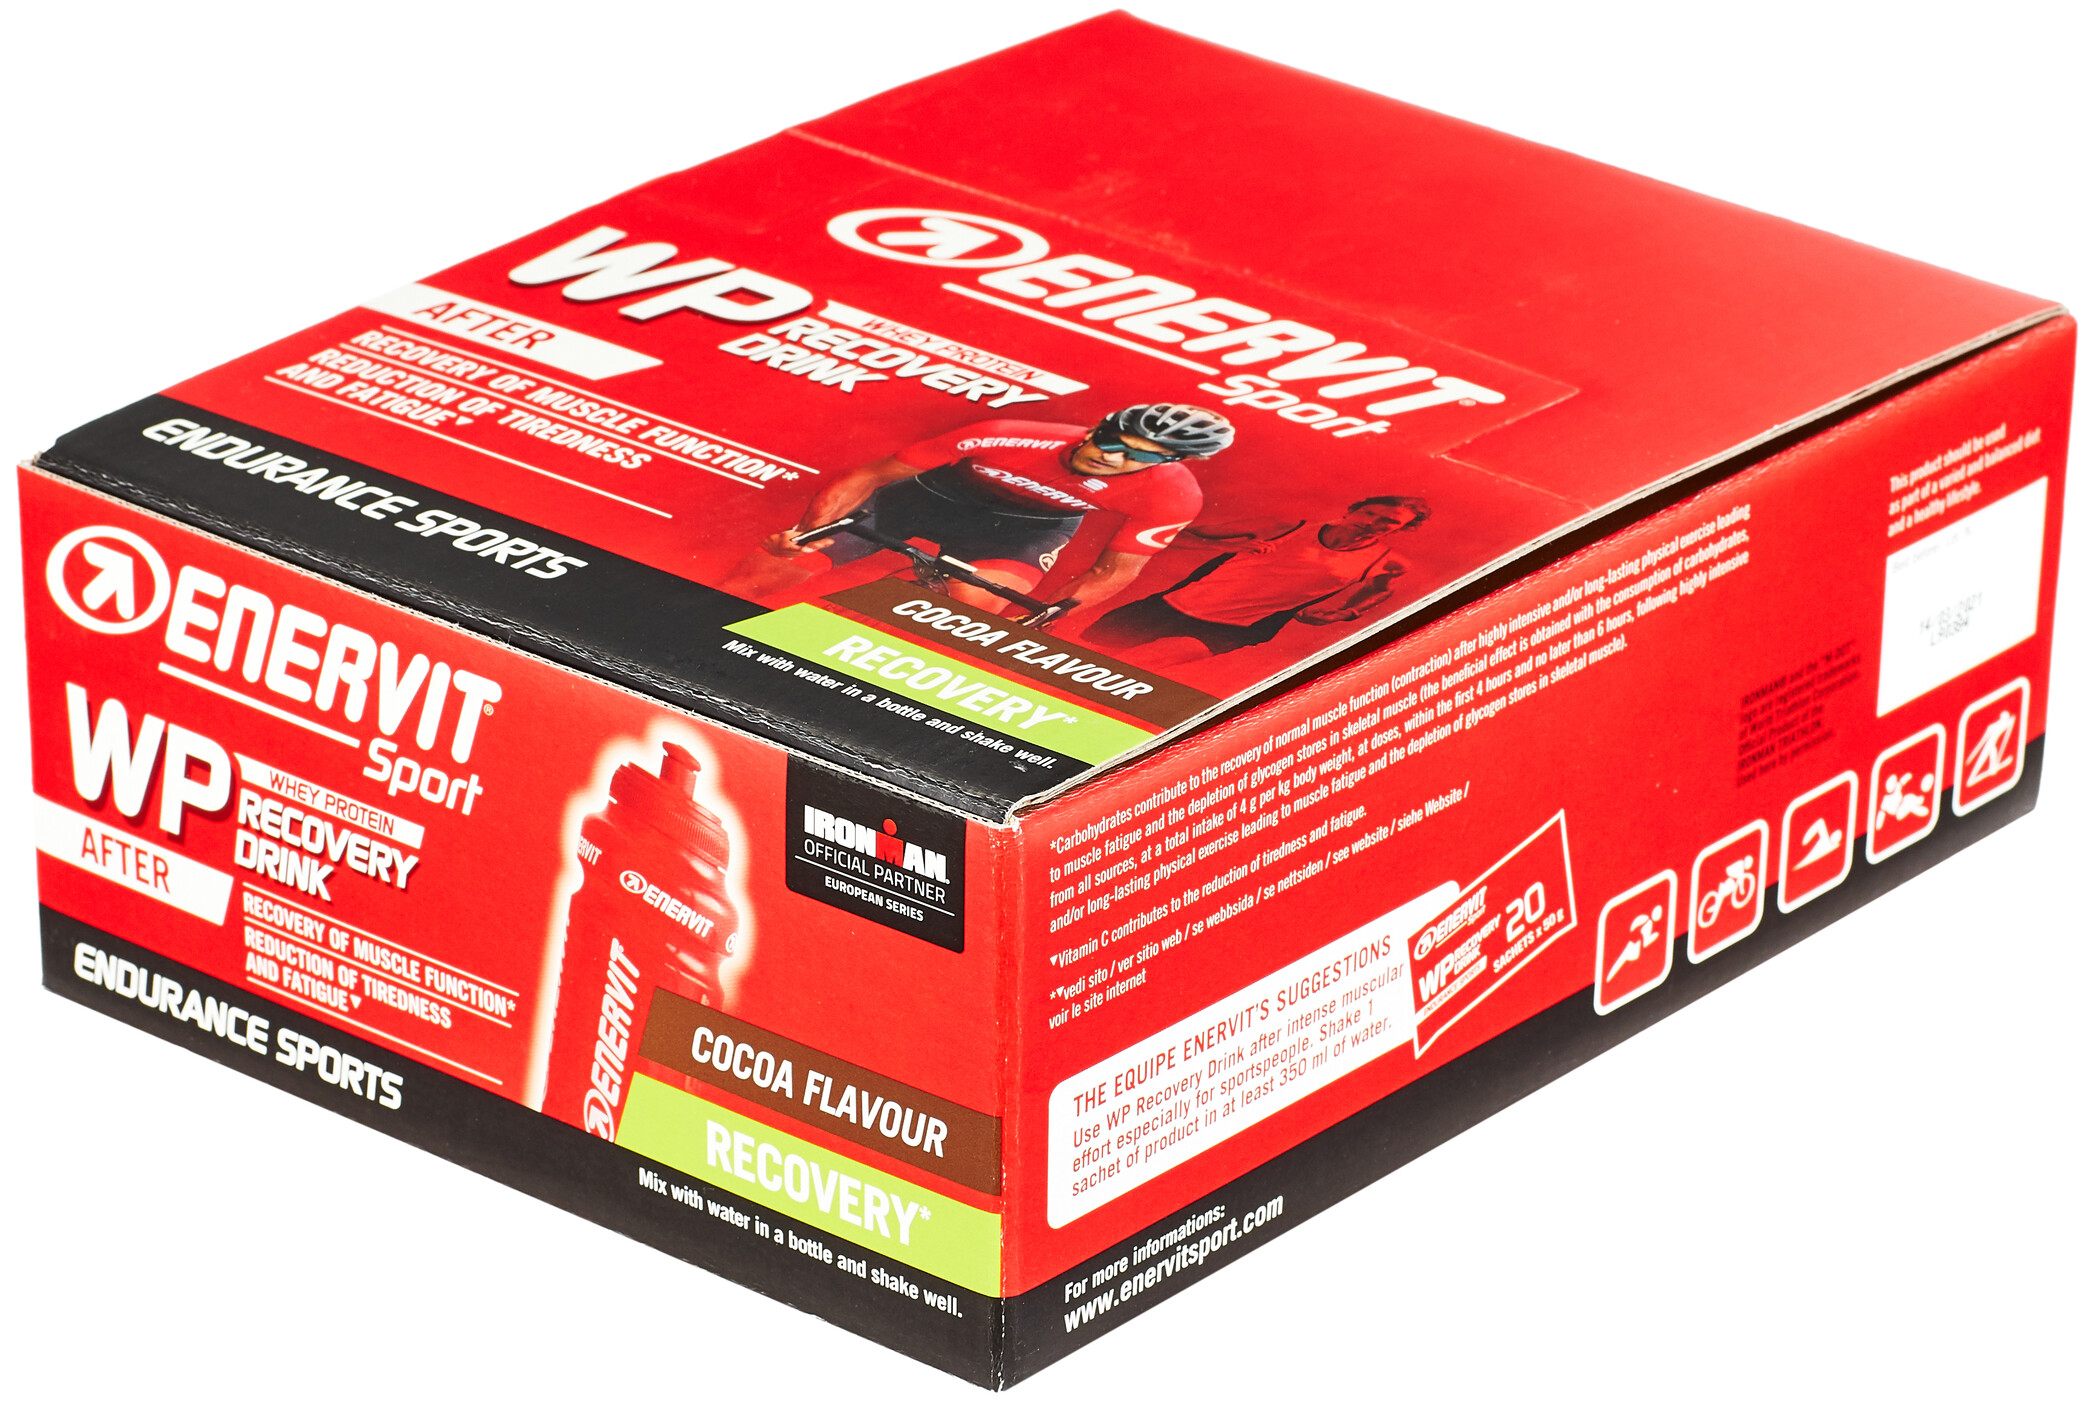 Enervit Sport Recovery Drink Box 20x50g, Universal (2019)   Protein bar and powder